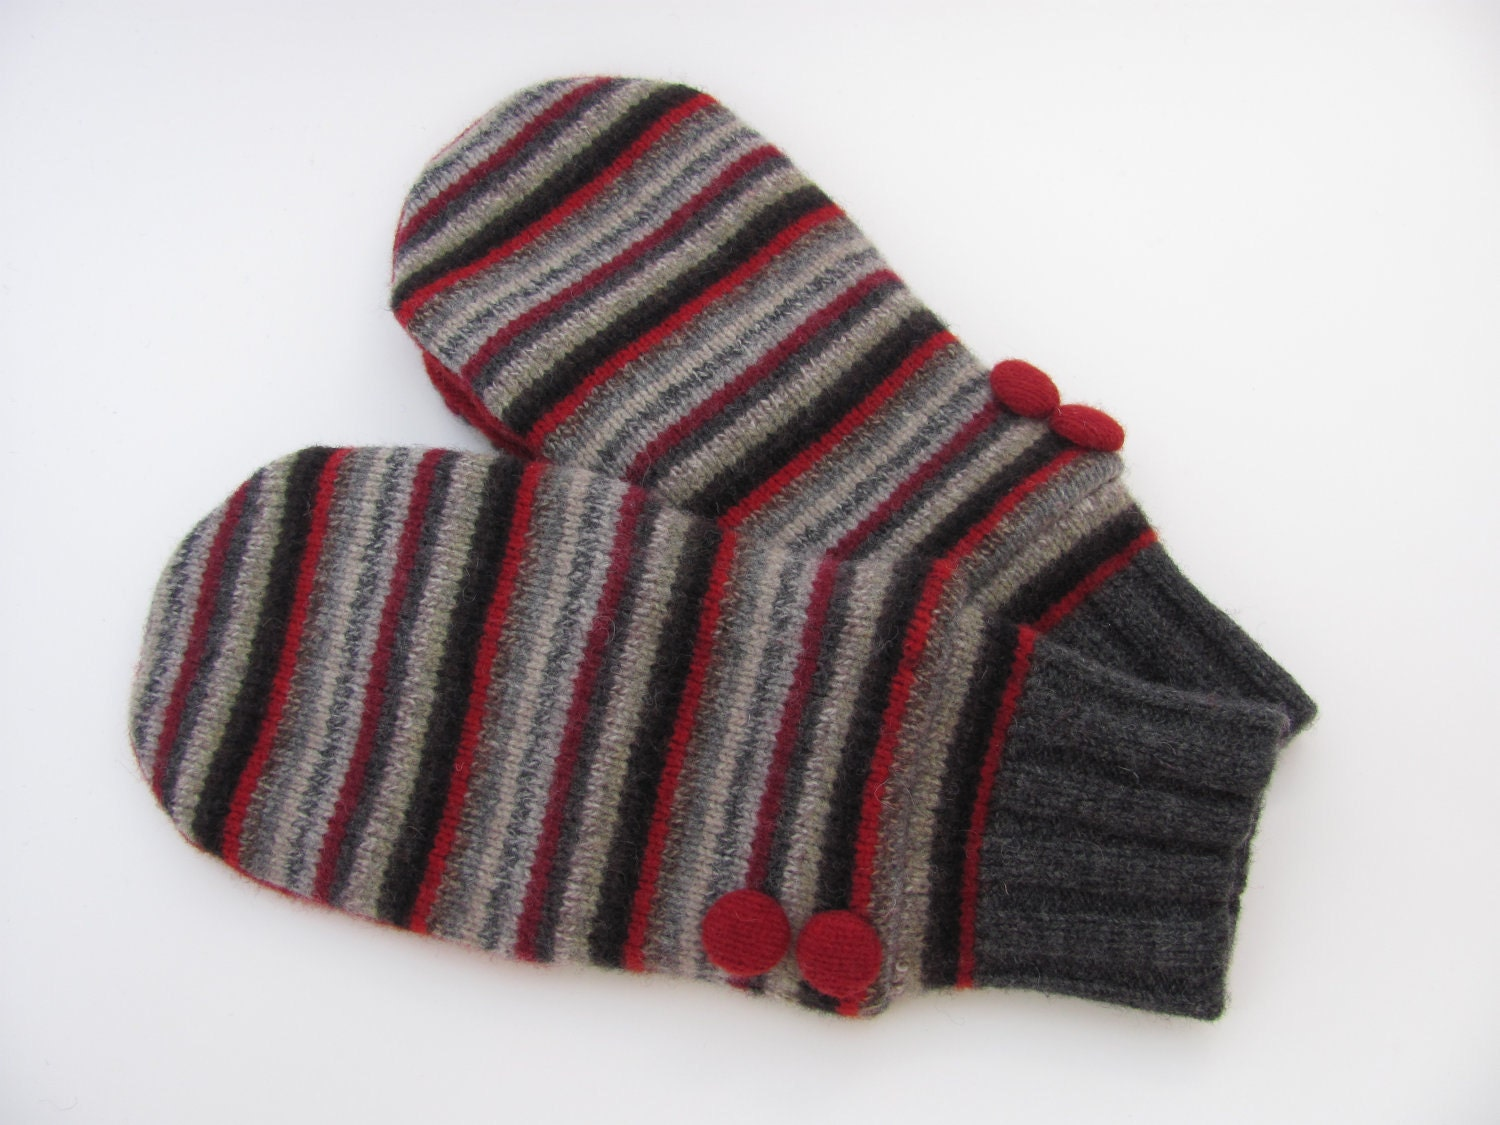 Felted wool sweater mittens fleece lined red and by jmariecreates